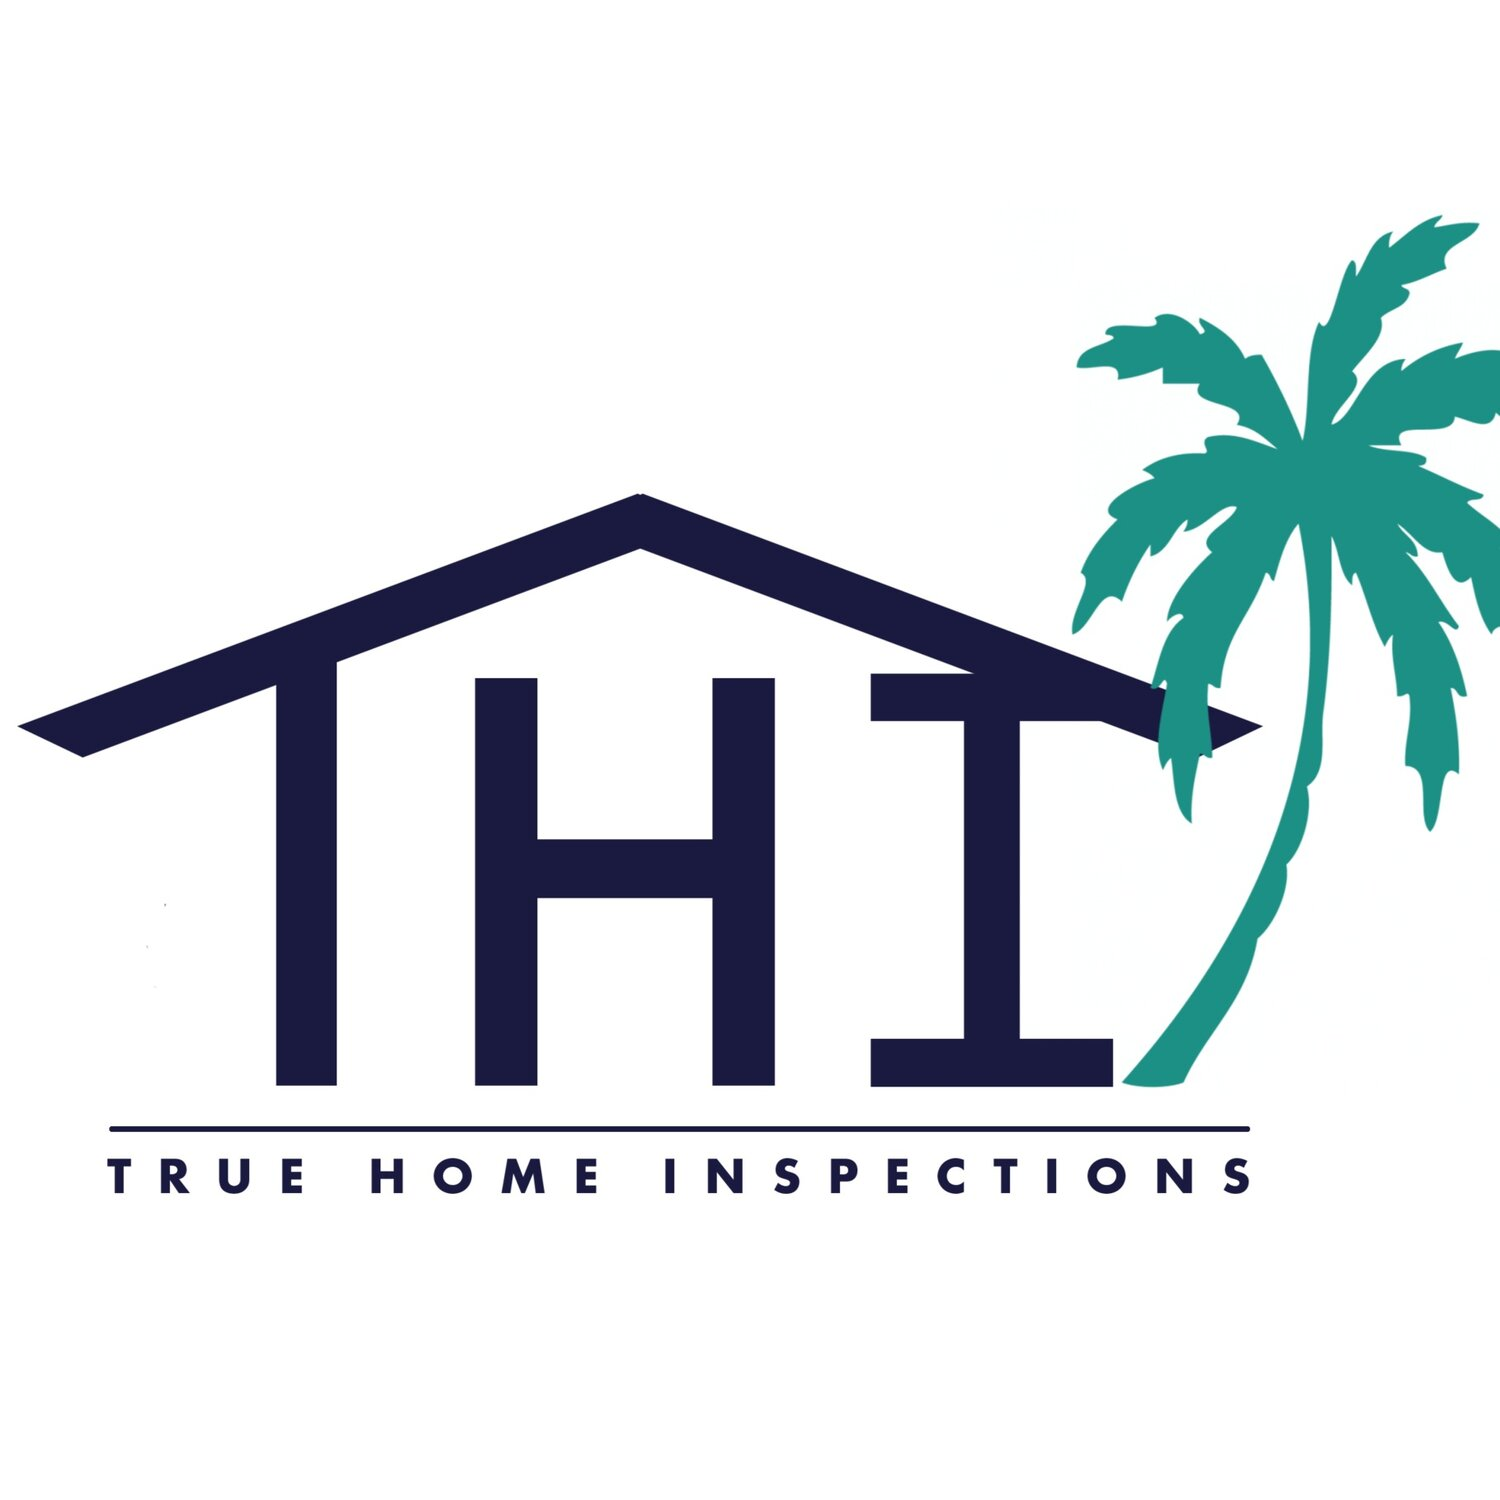 True Home Inspections